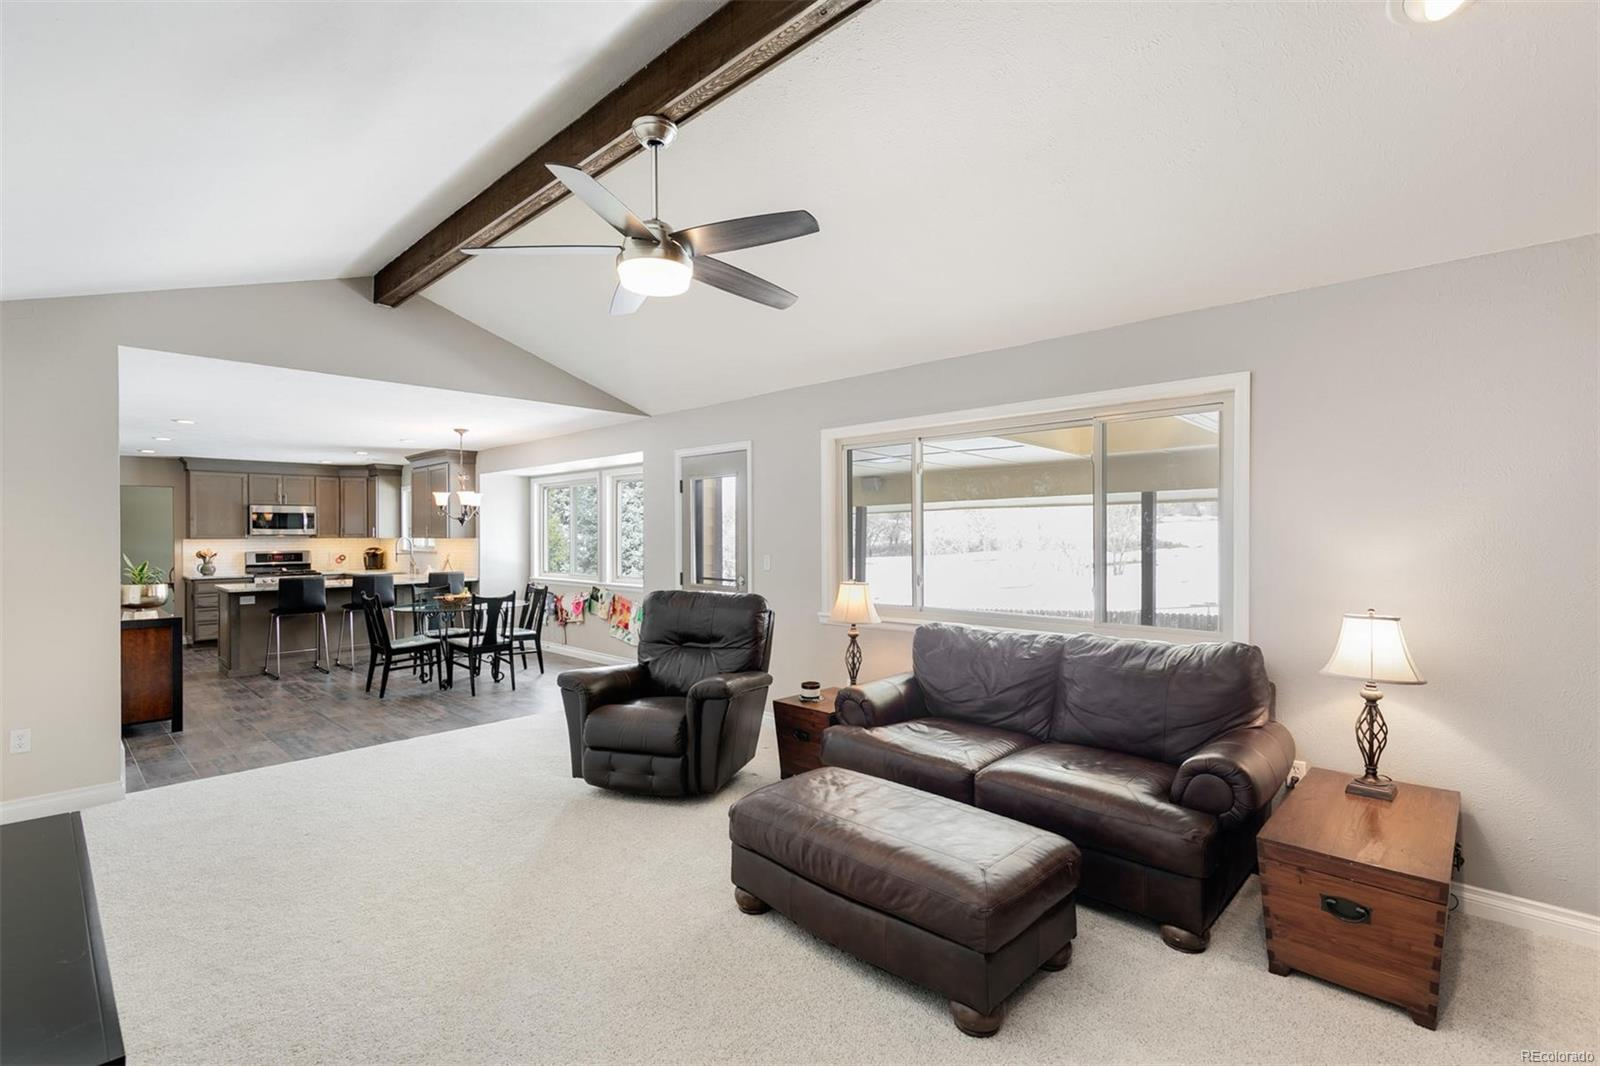 The connectivity and openness of the family room, breakfast nook and kitchen is ideal, as is the easy access to the outdoor living spaces of the back patio, hot tub and back yard.